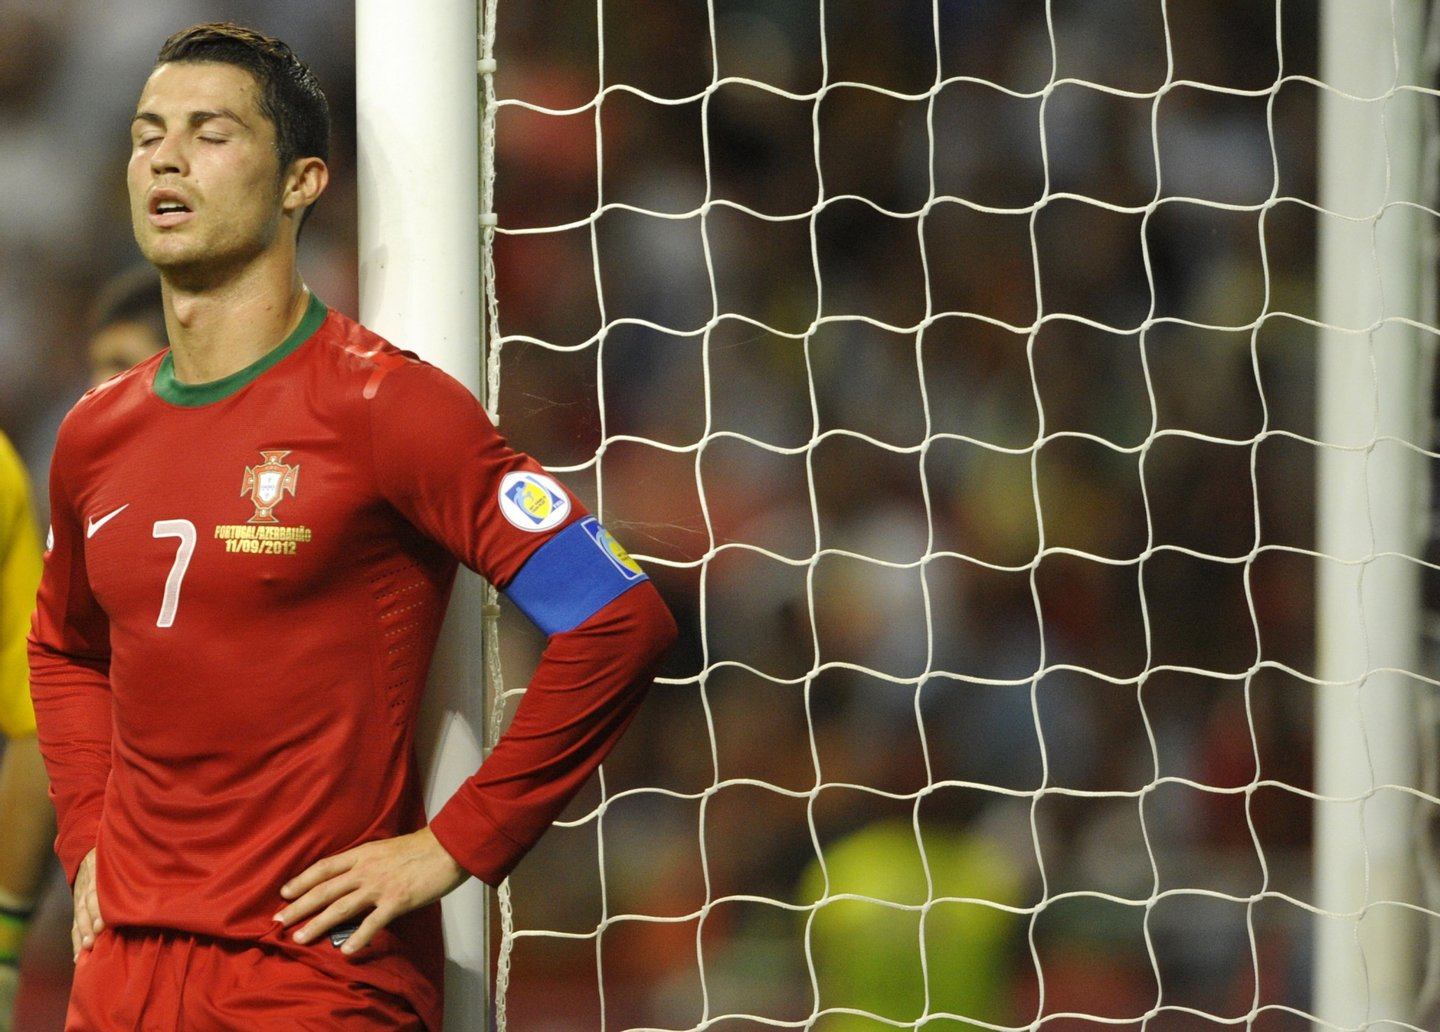 Portugal's forward Cristiano Ronaldo reacts after loosing a chance to score a goal during the World Cup 2014 qualifying football match Portugal between and Azerbaijan at the AXA Stadium in Braga, northern Portugal, on September 11, 2012. AFP PHOTO / MIGUEL RIOPA        (Photo credit should read MIGUEL RIOPA/AFP/GettyImages)